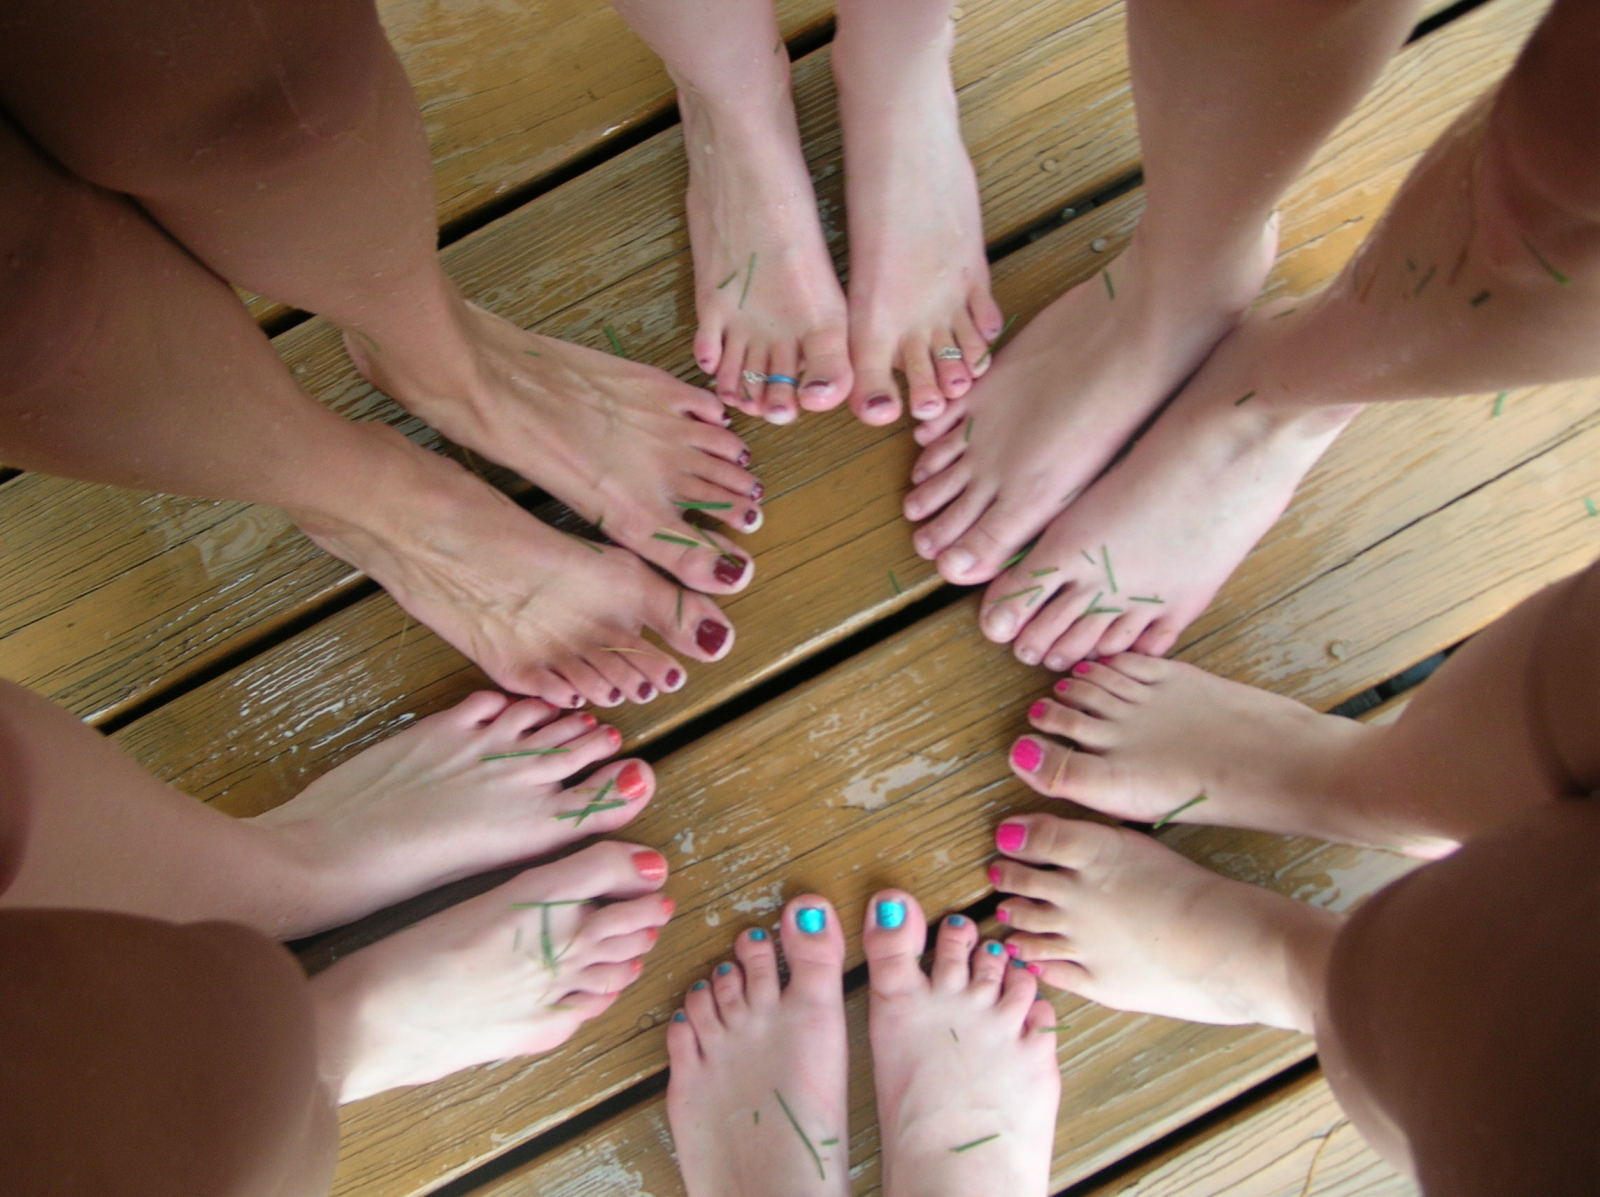 Bare foot orgy — photo 1